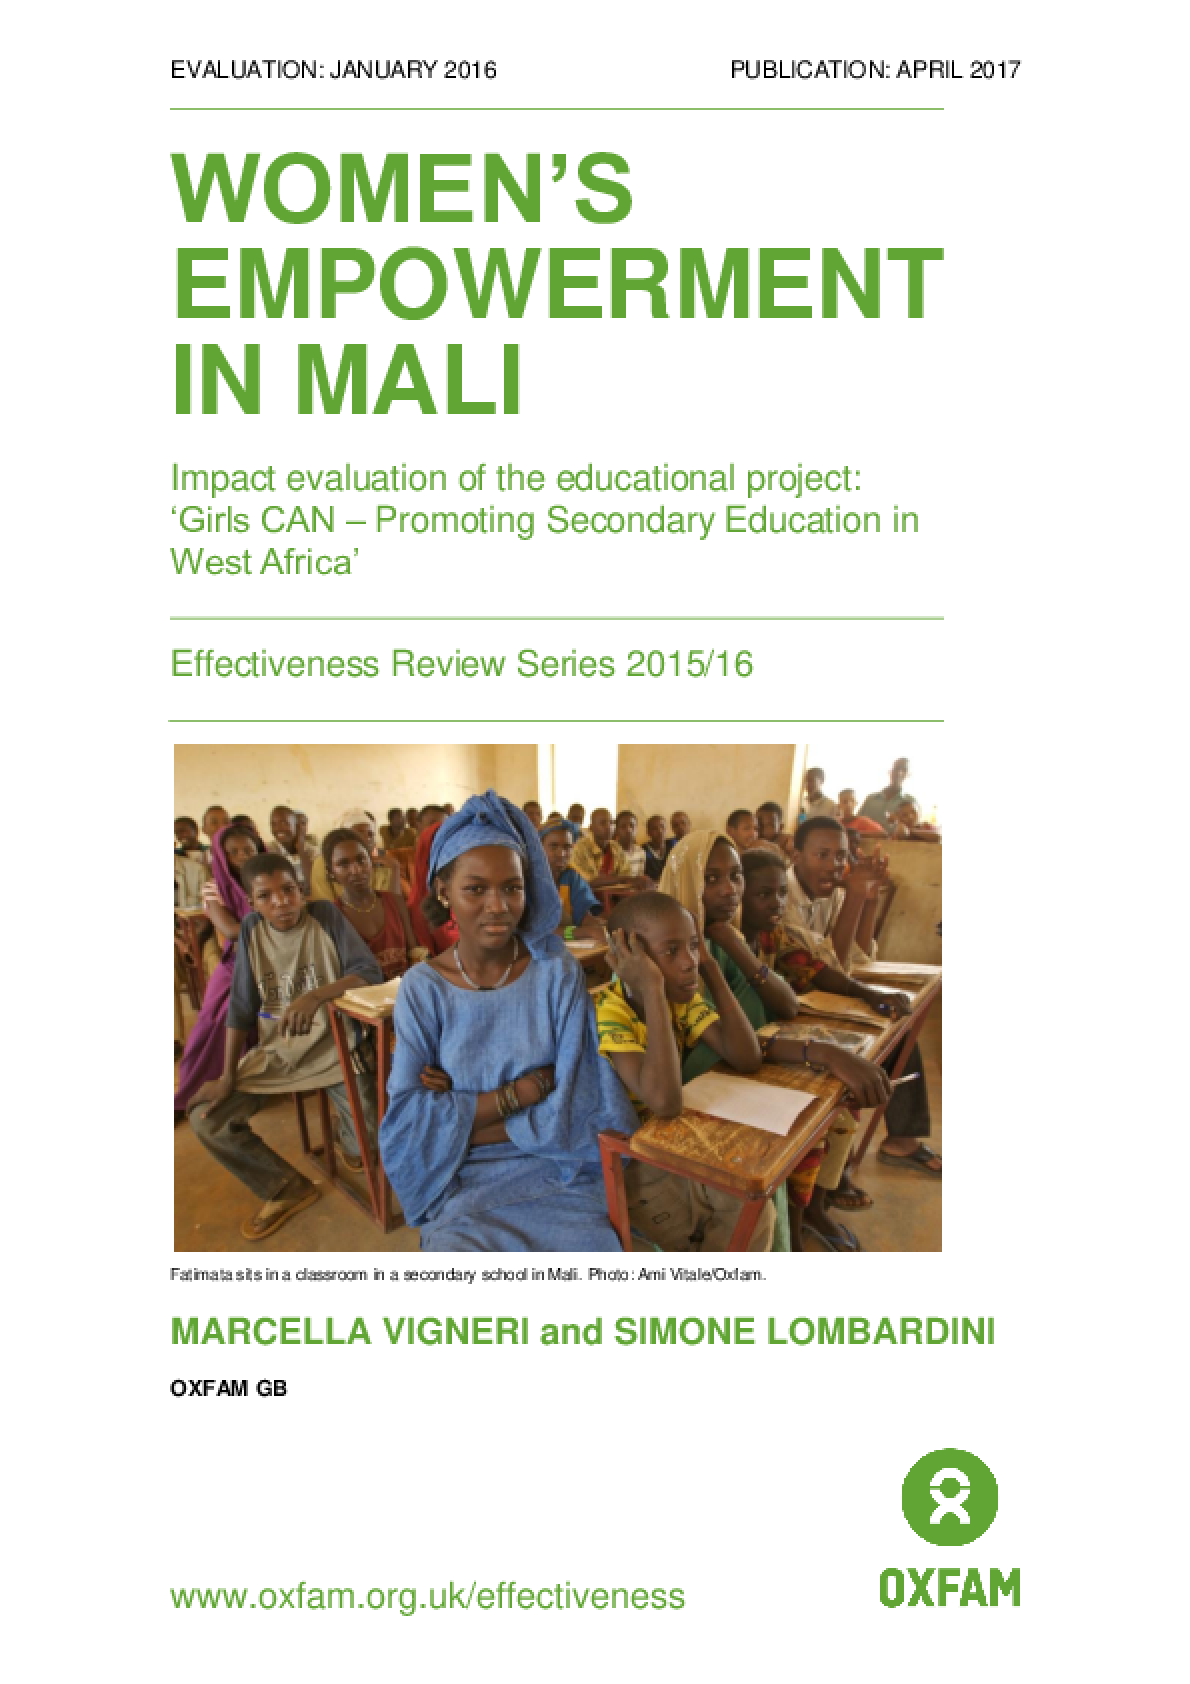 Women's Empowerment in Mali: Impact evaluation of the educational project: 'Girls CAN - Promoting Secondary Education in West Africa'